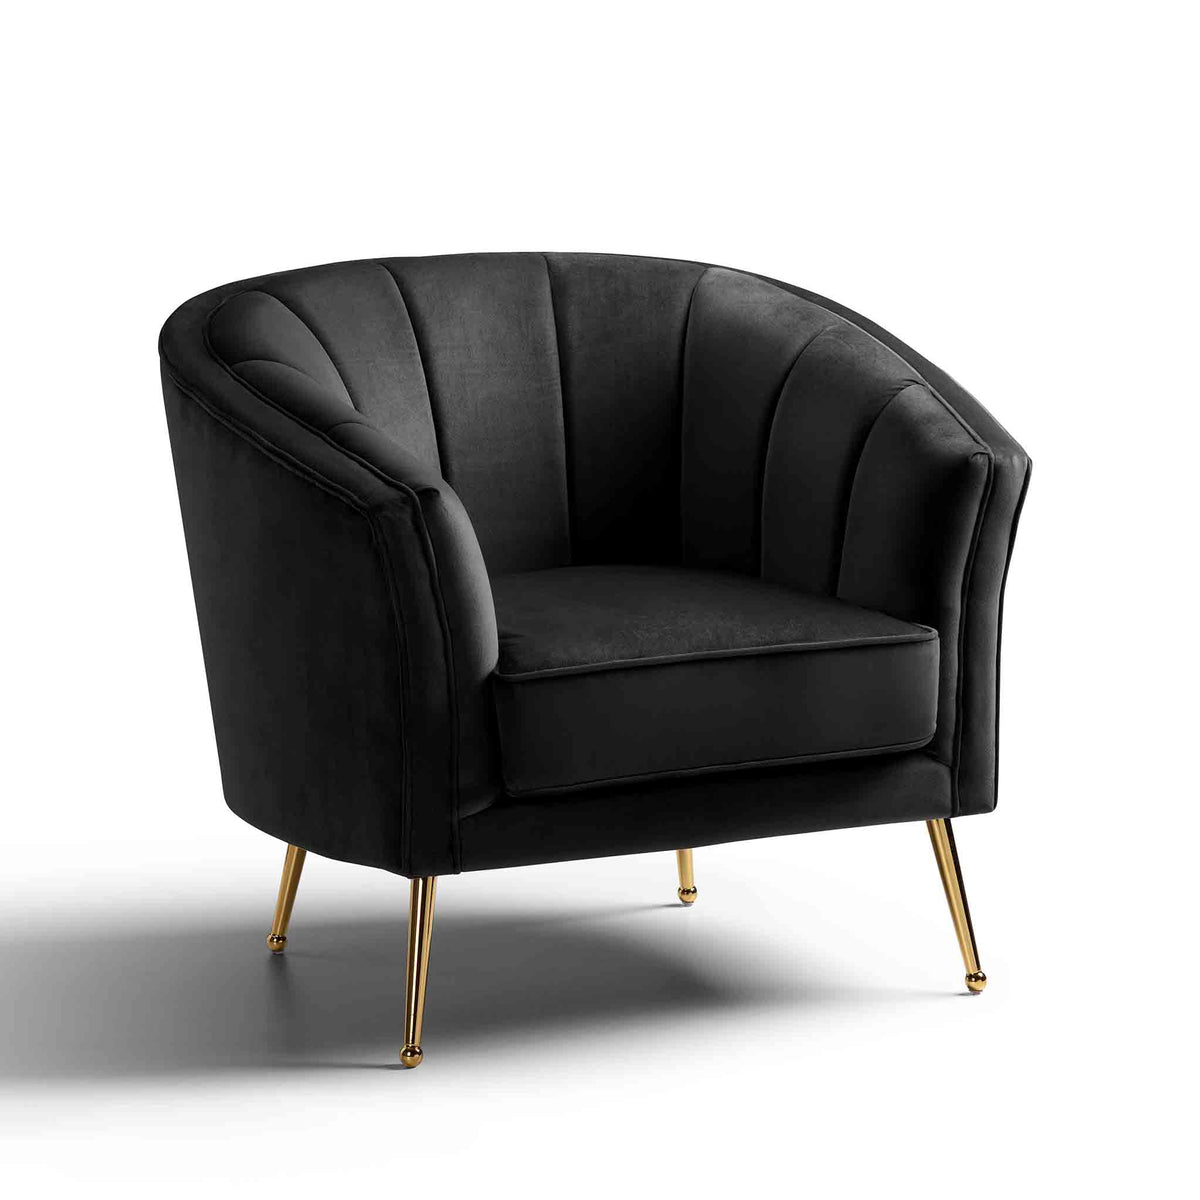 Adele Accent Chair - Black